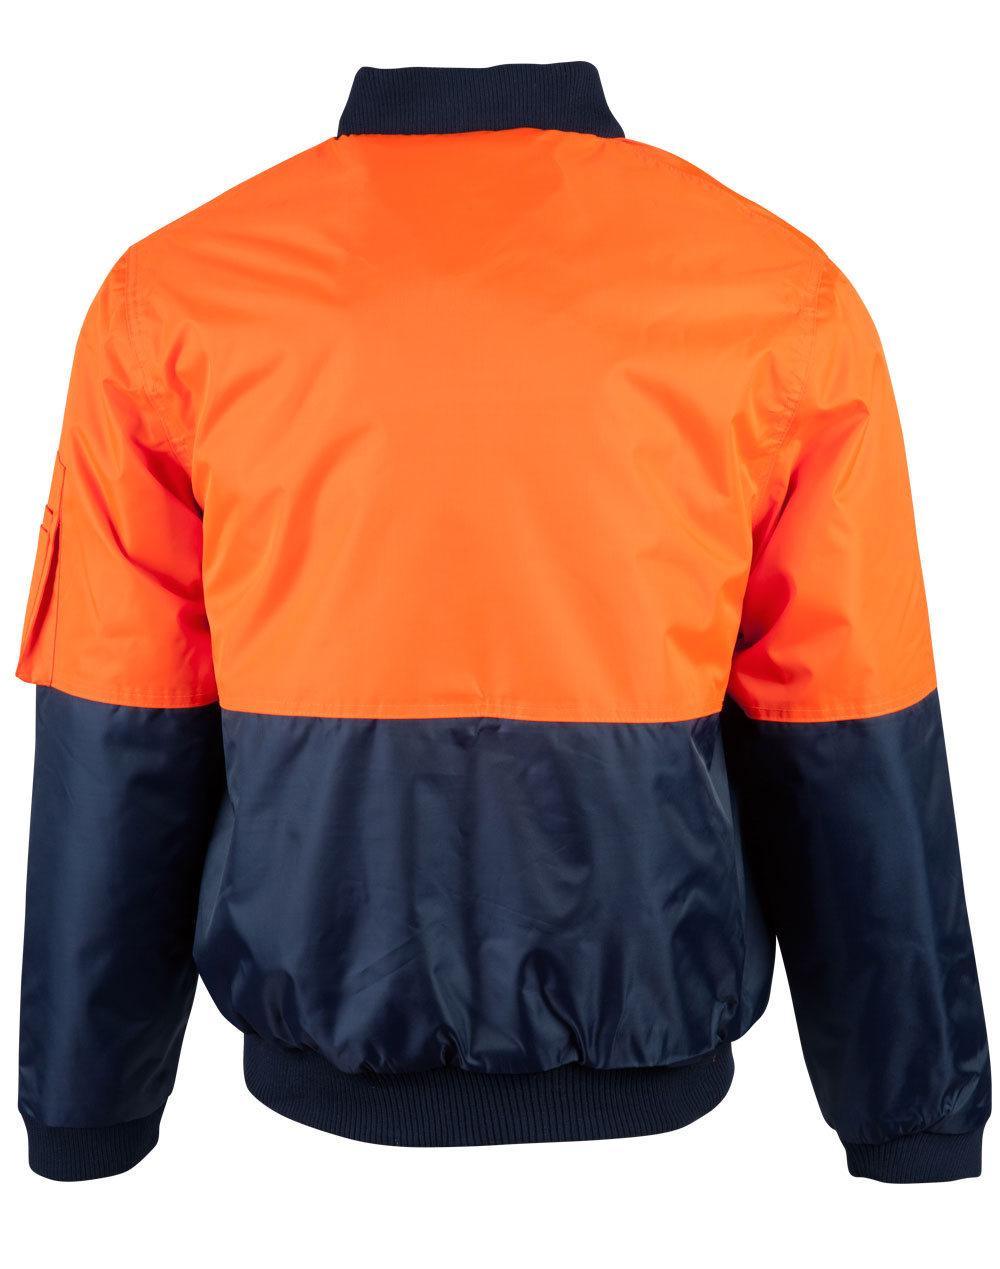 https://s3-ap-southeast-1.amazonaws.com/ws-imgs/WORKWEAR/SW06A_Orange.Navy_Back_l.jpg